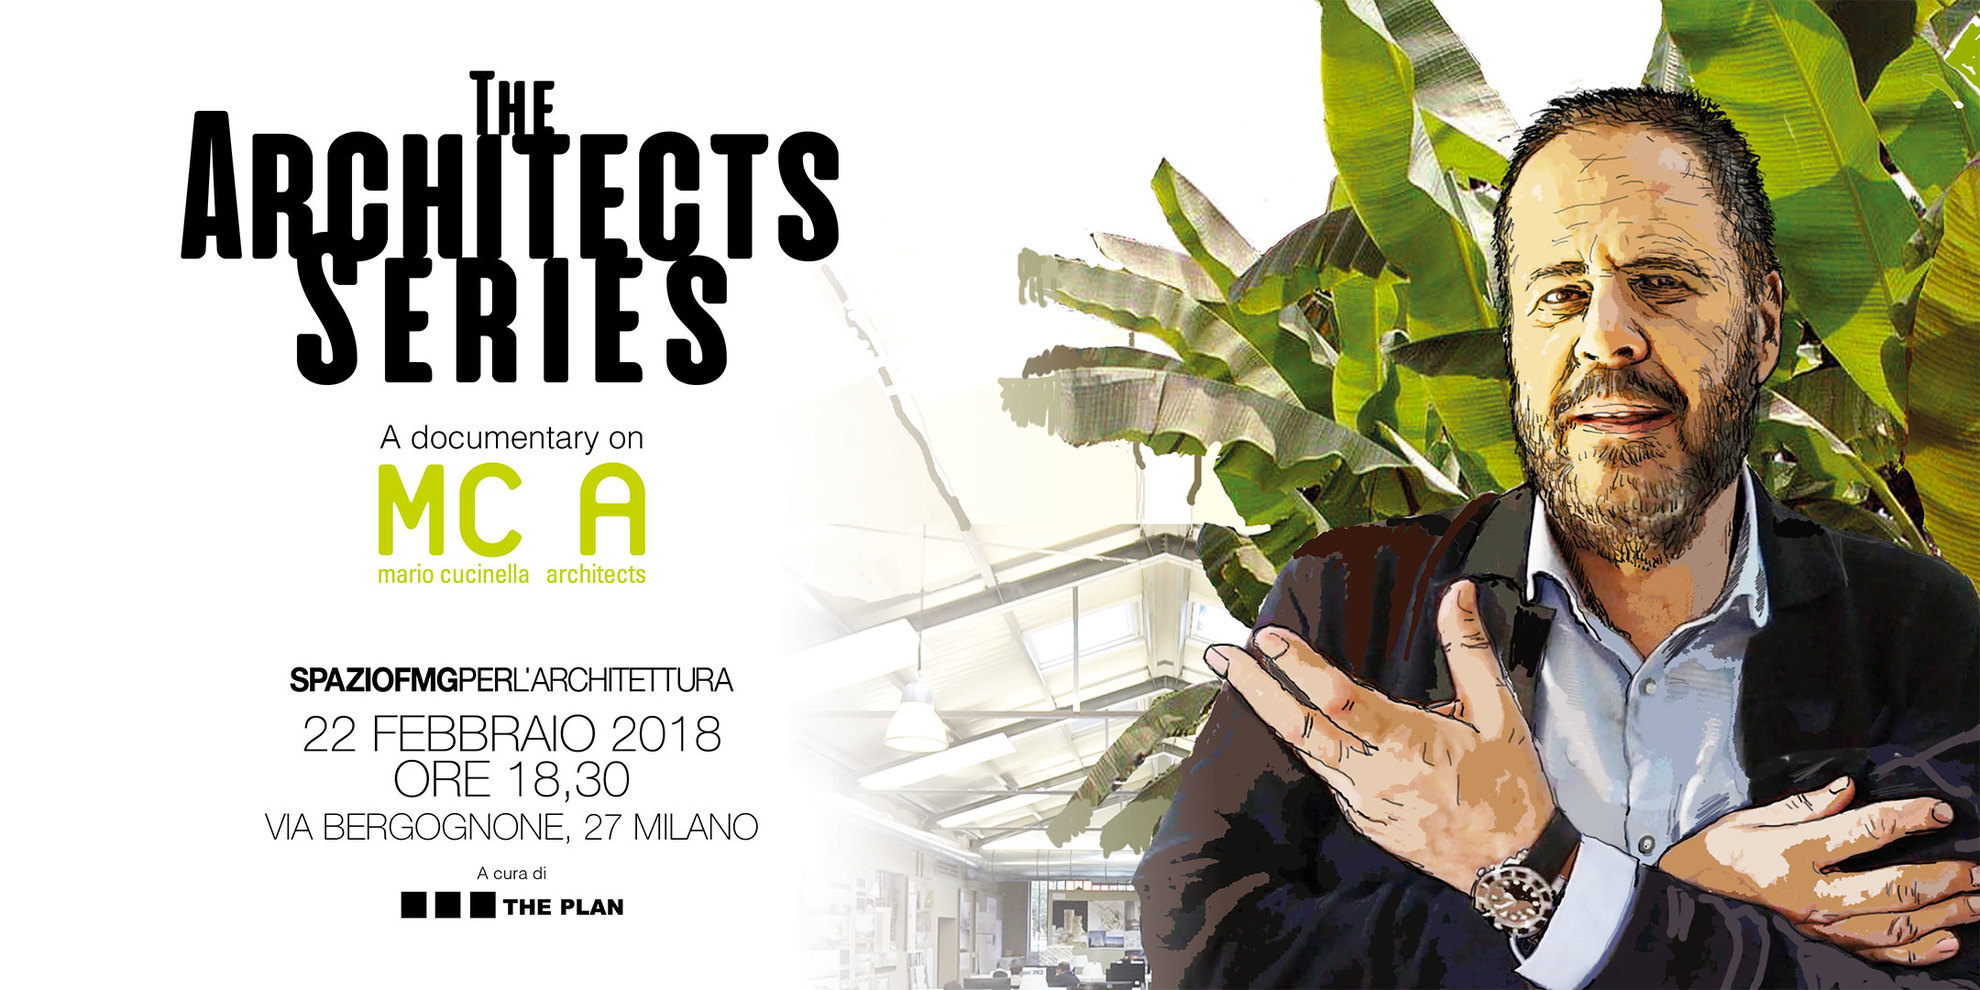 SpazioFMG präsentiert The Architects Series – A documentary on: MC A Mario Cucinella Architects